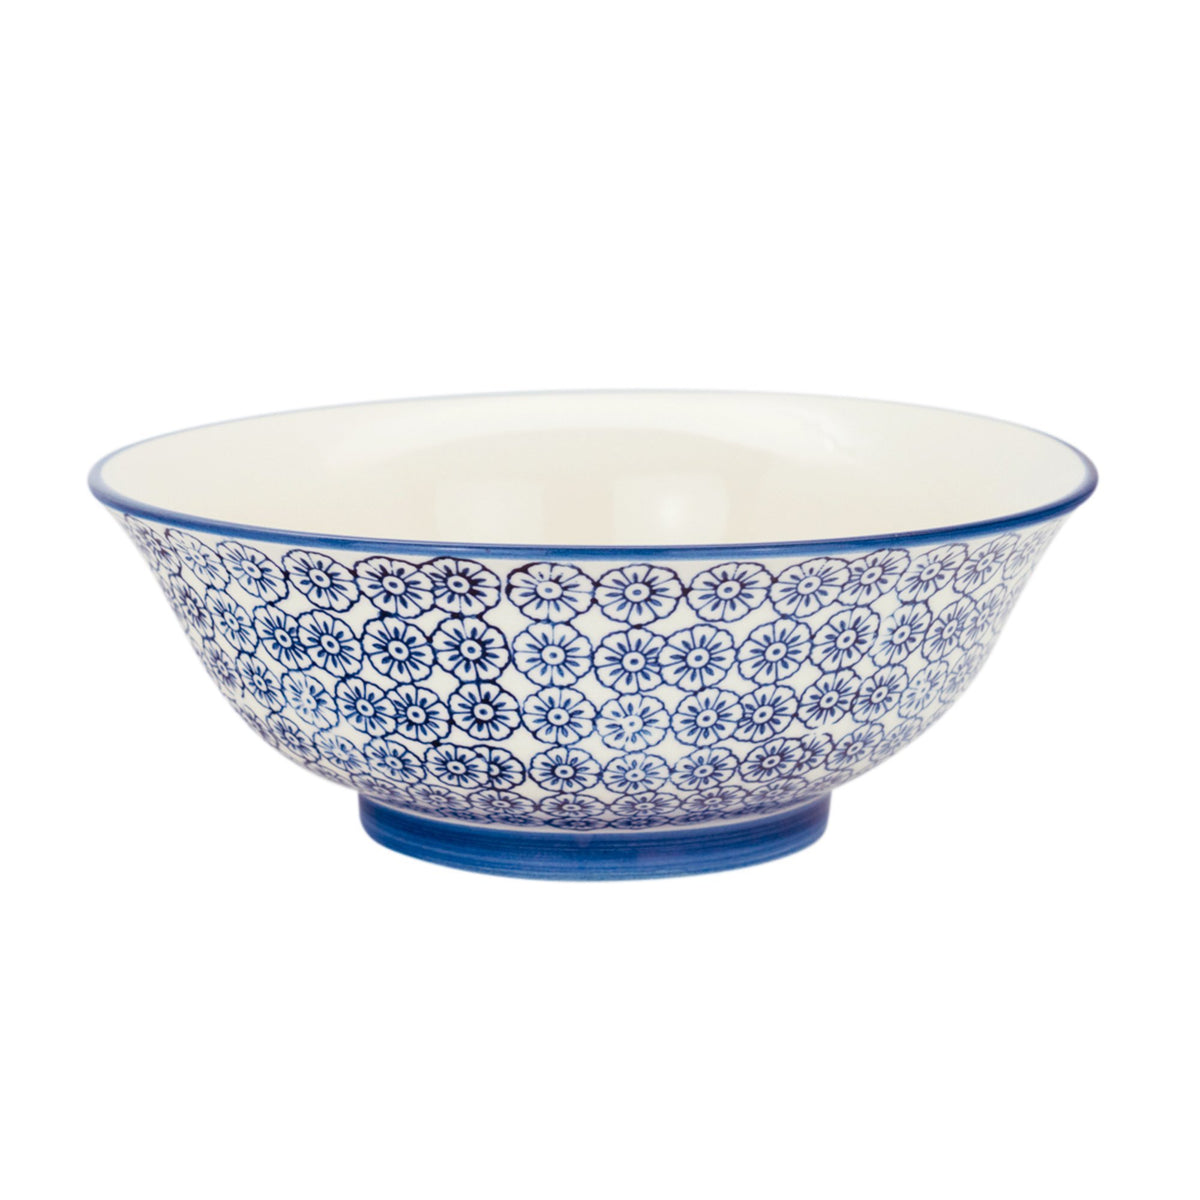 Nicola Spring Fruit Salad Serving Bowl